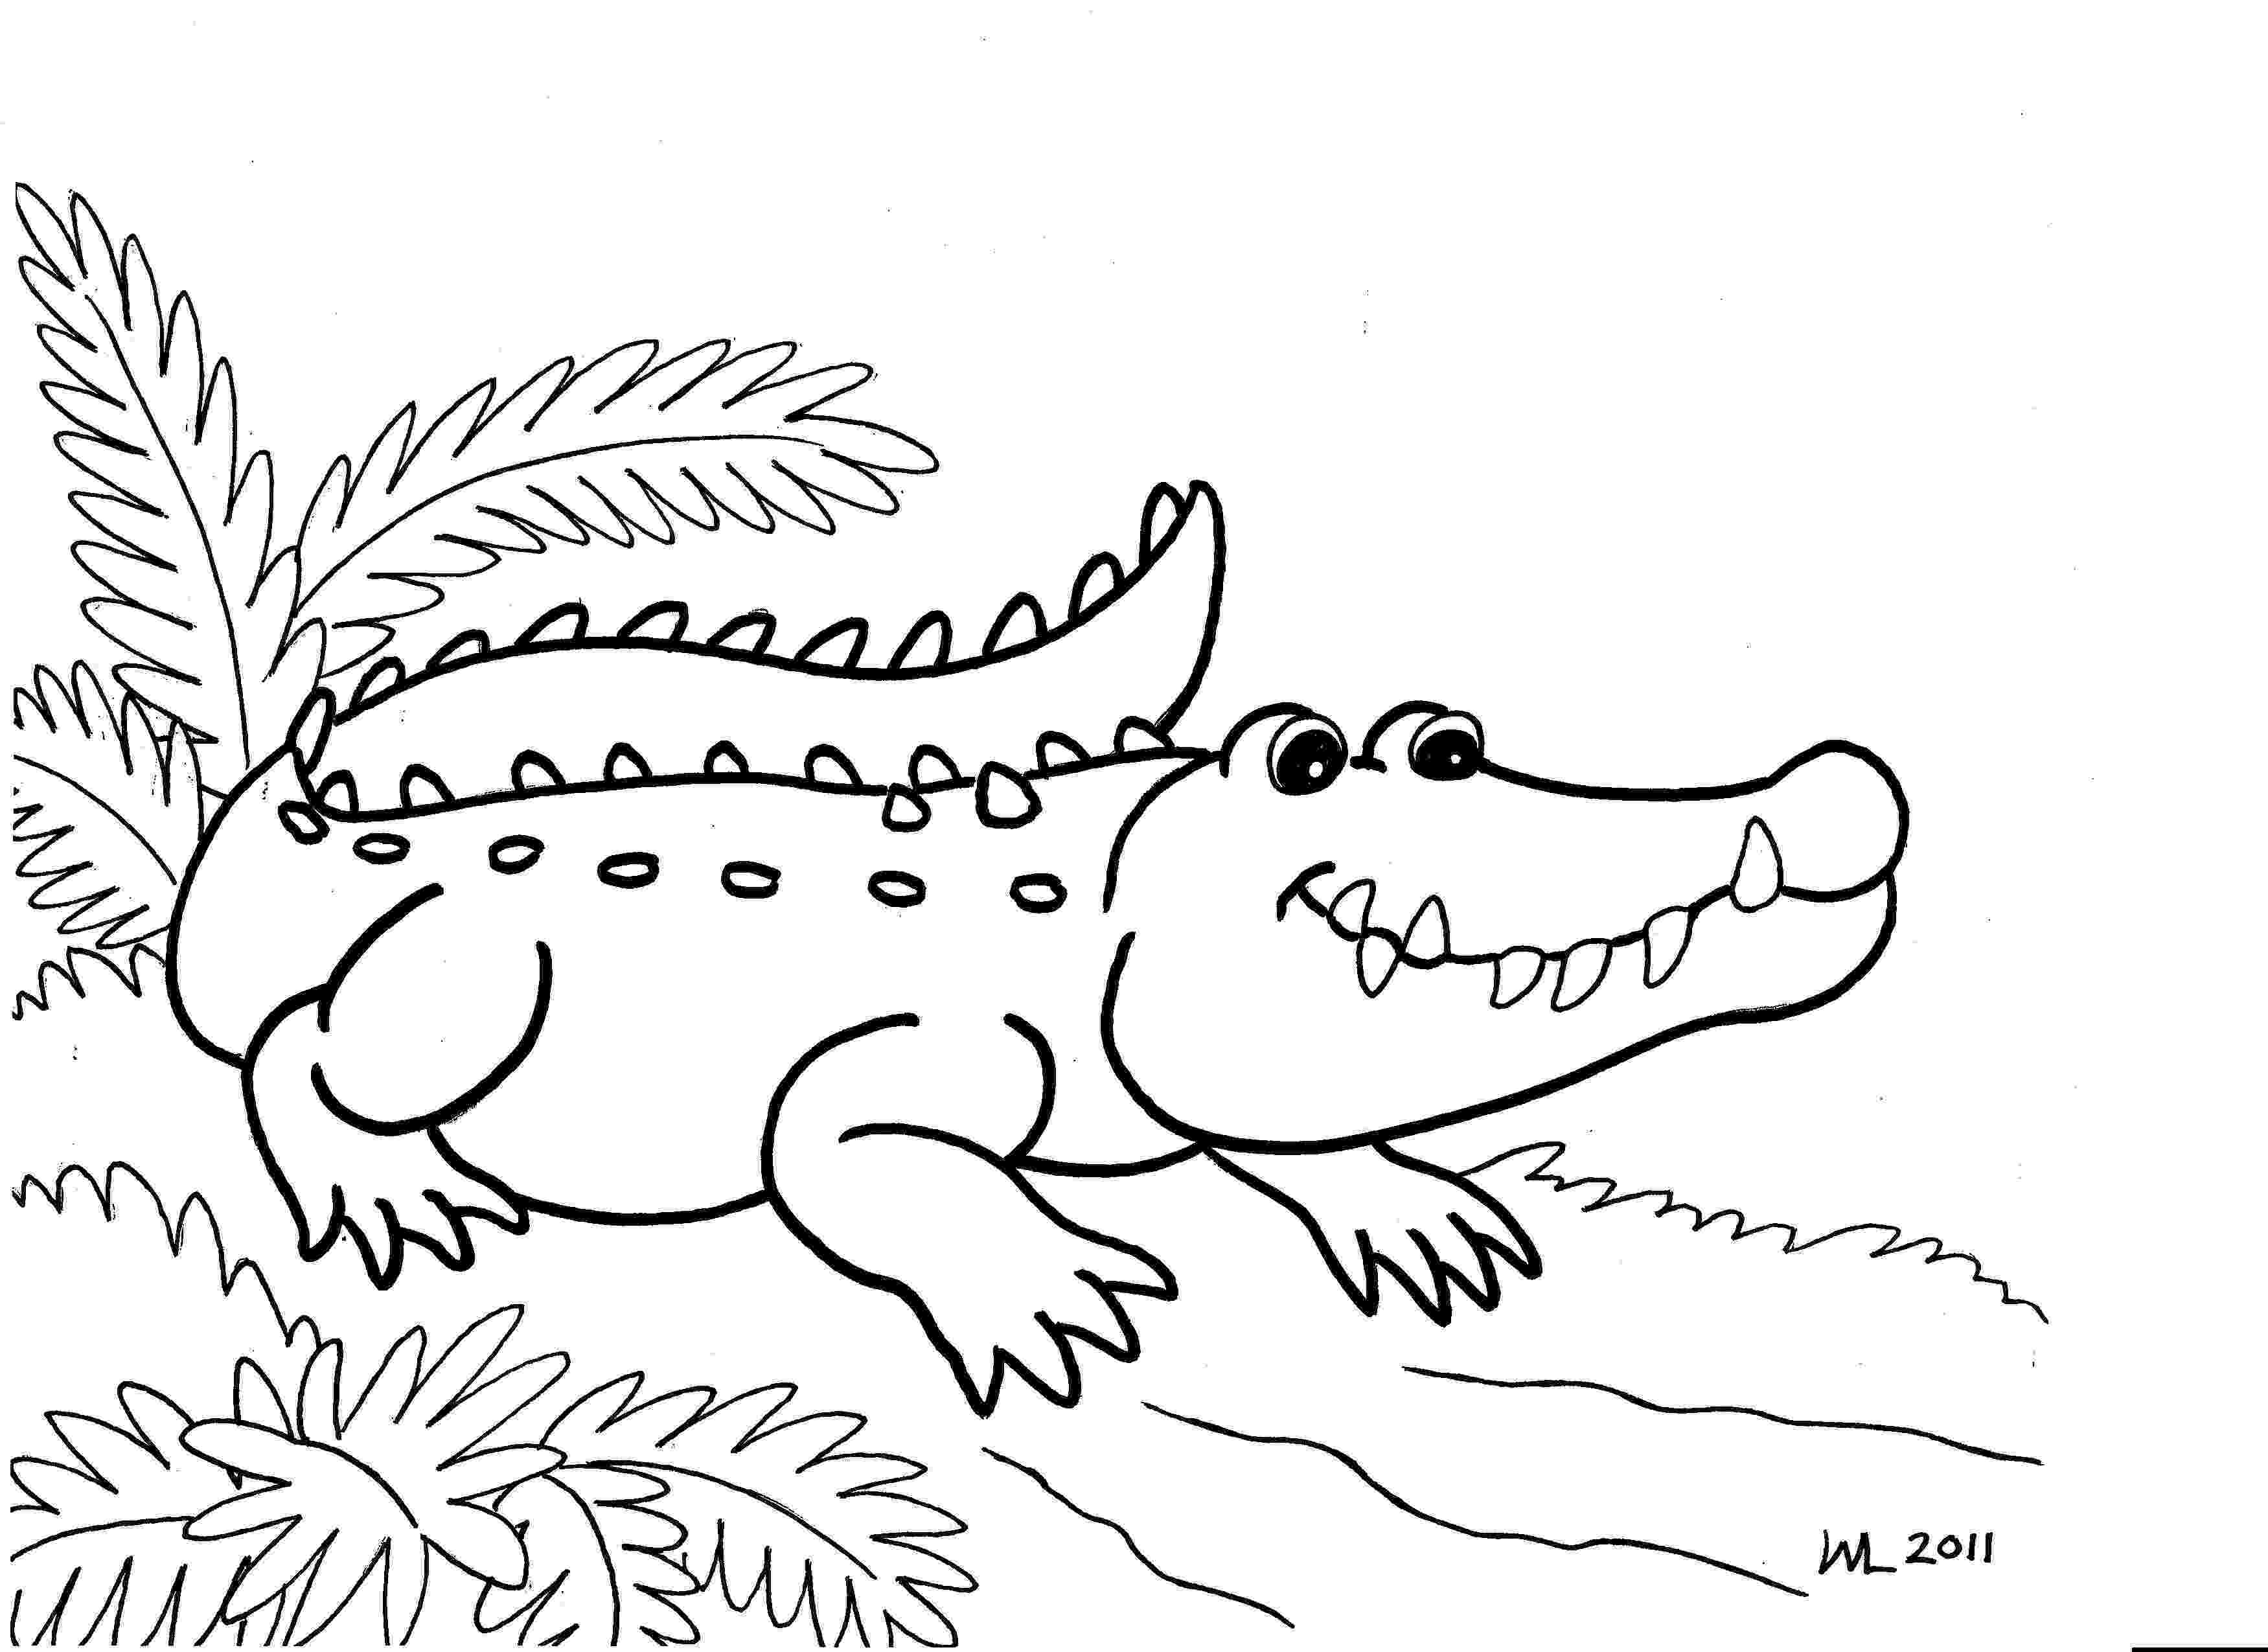 alligator coloring pages free printable alligator coloring pages for kids coloring pages alligator 1 1